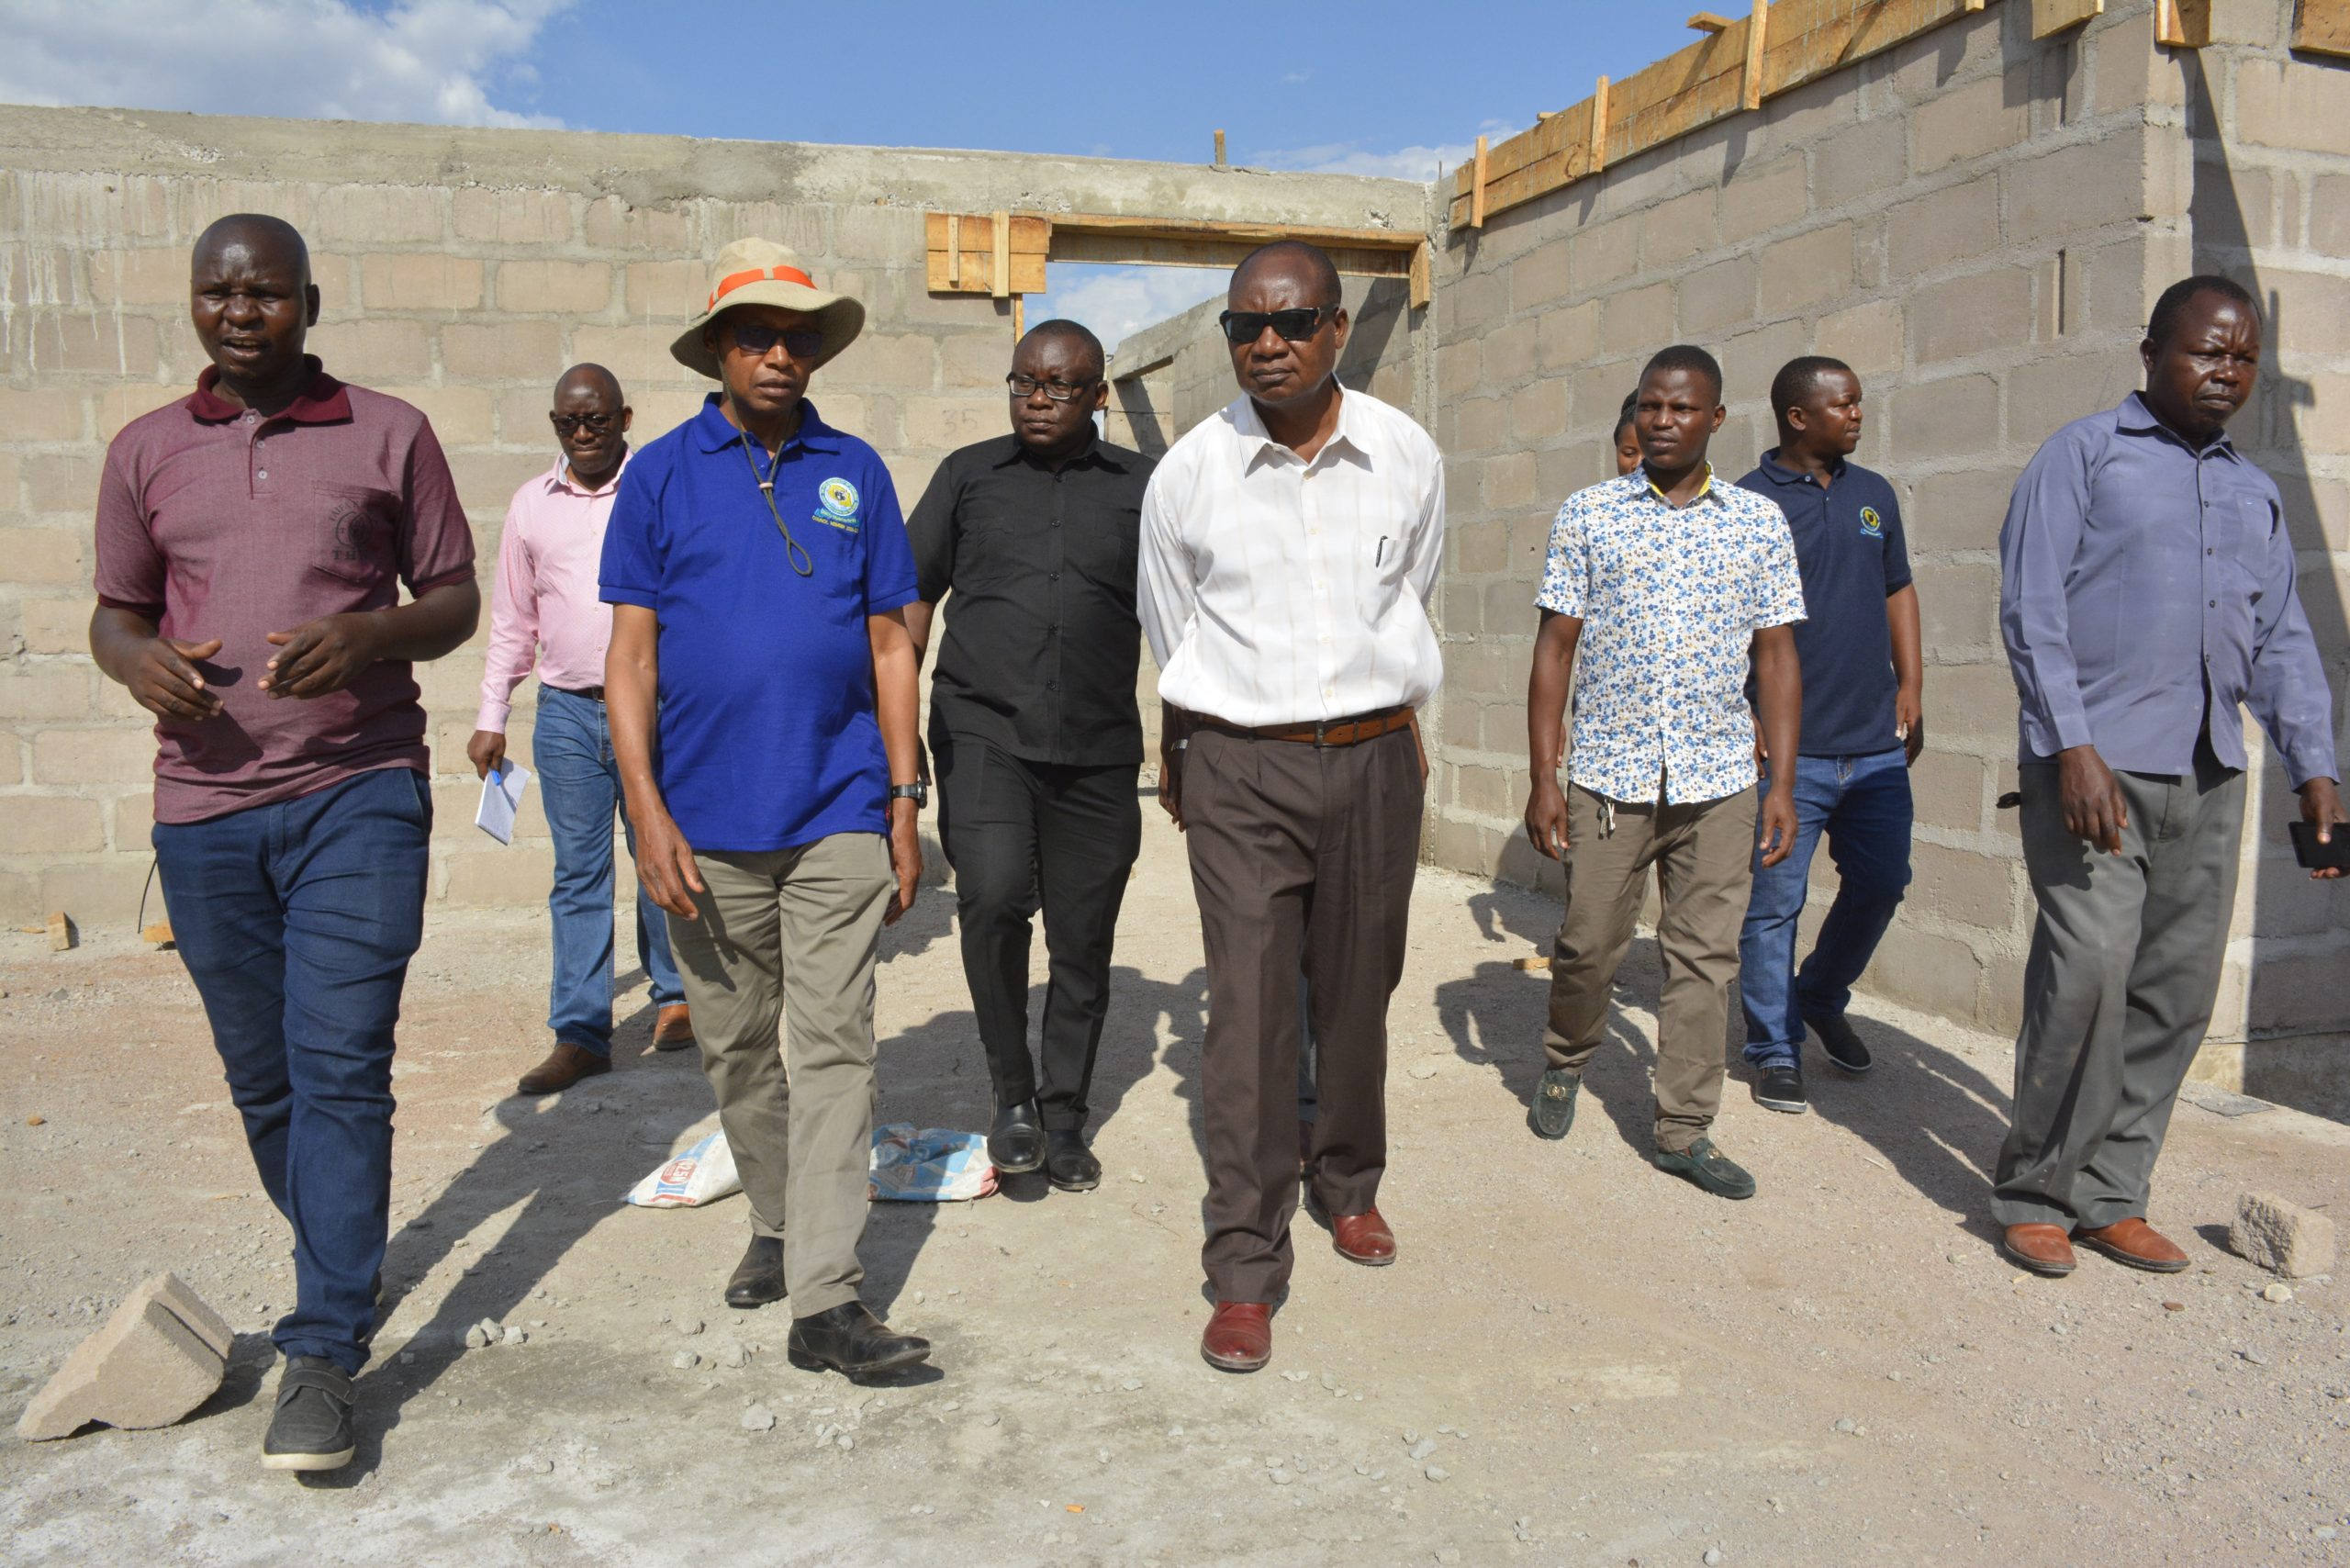 PROF. MUKANDALA VISITS THE ONGOING CONSTRUCTION IN MANYARA, SIMIYU AND GEITA